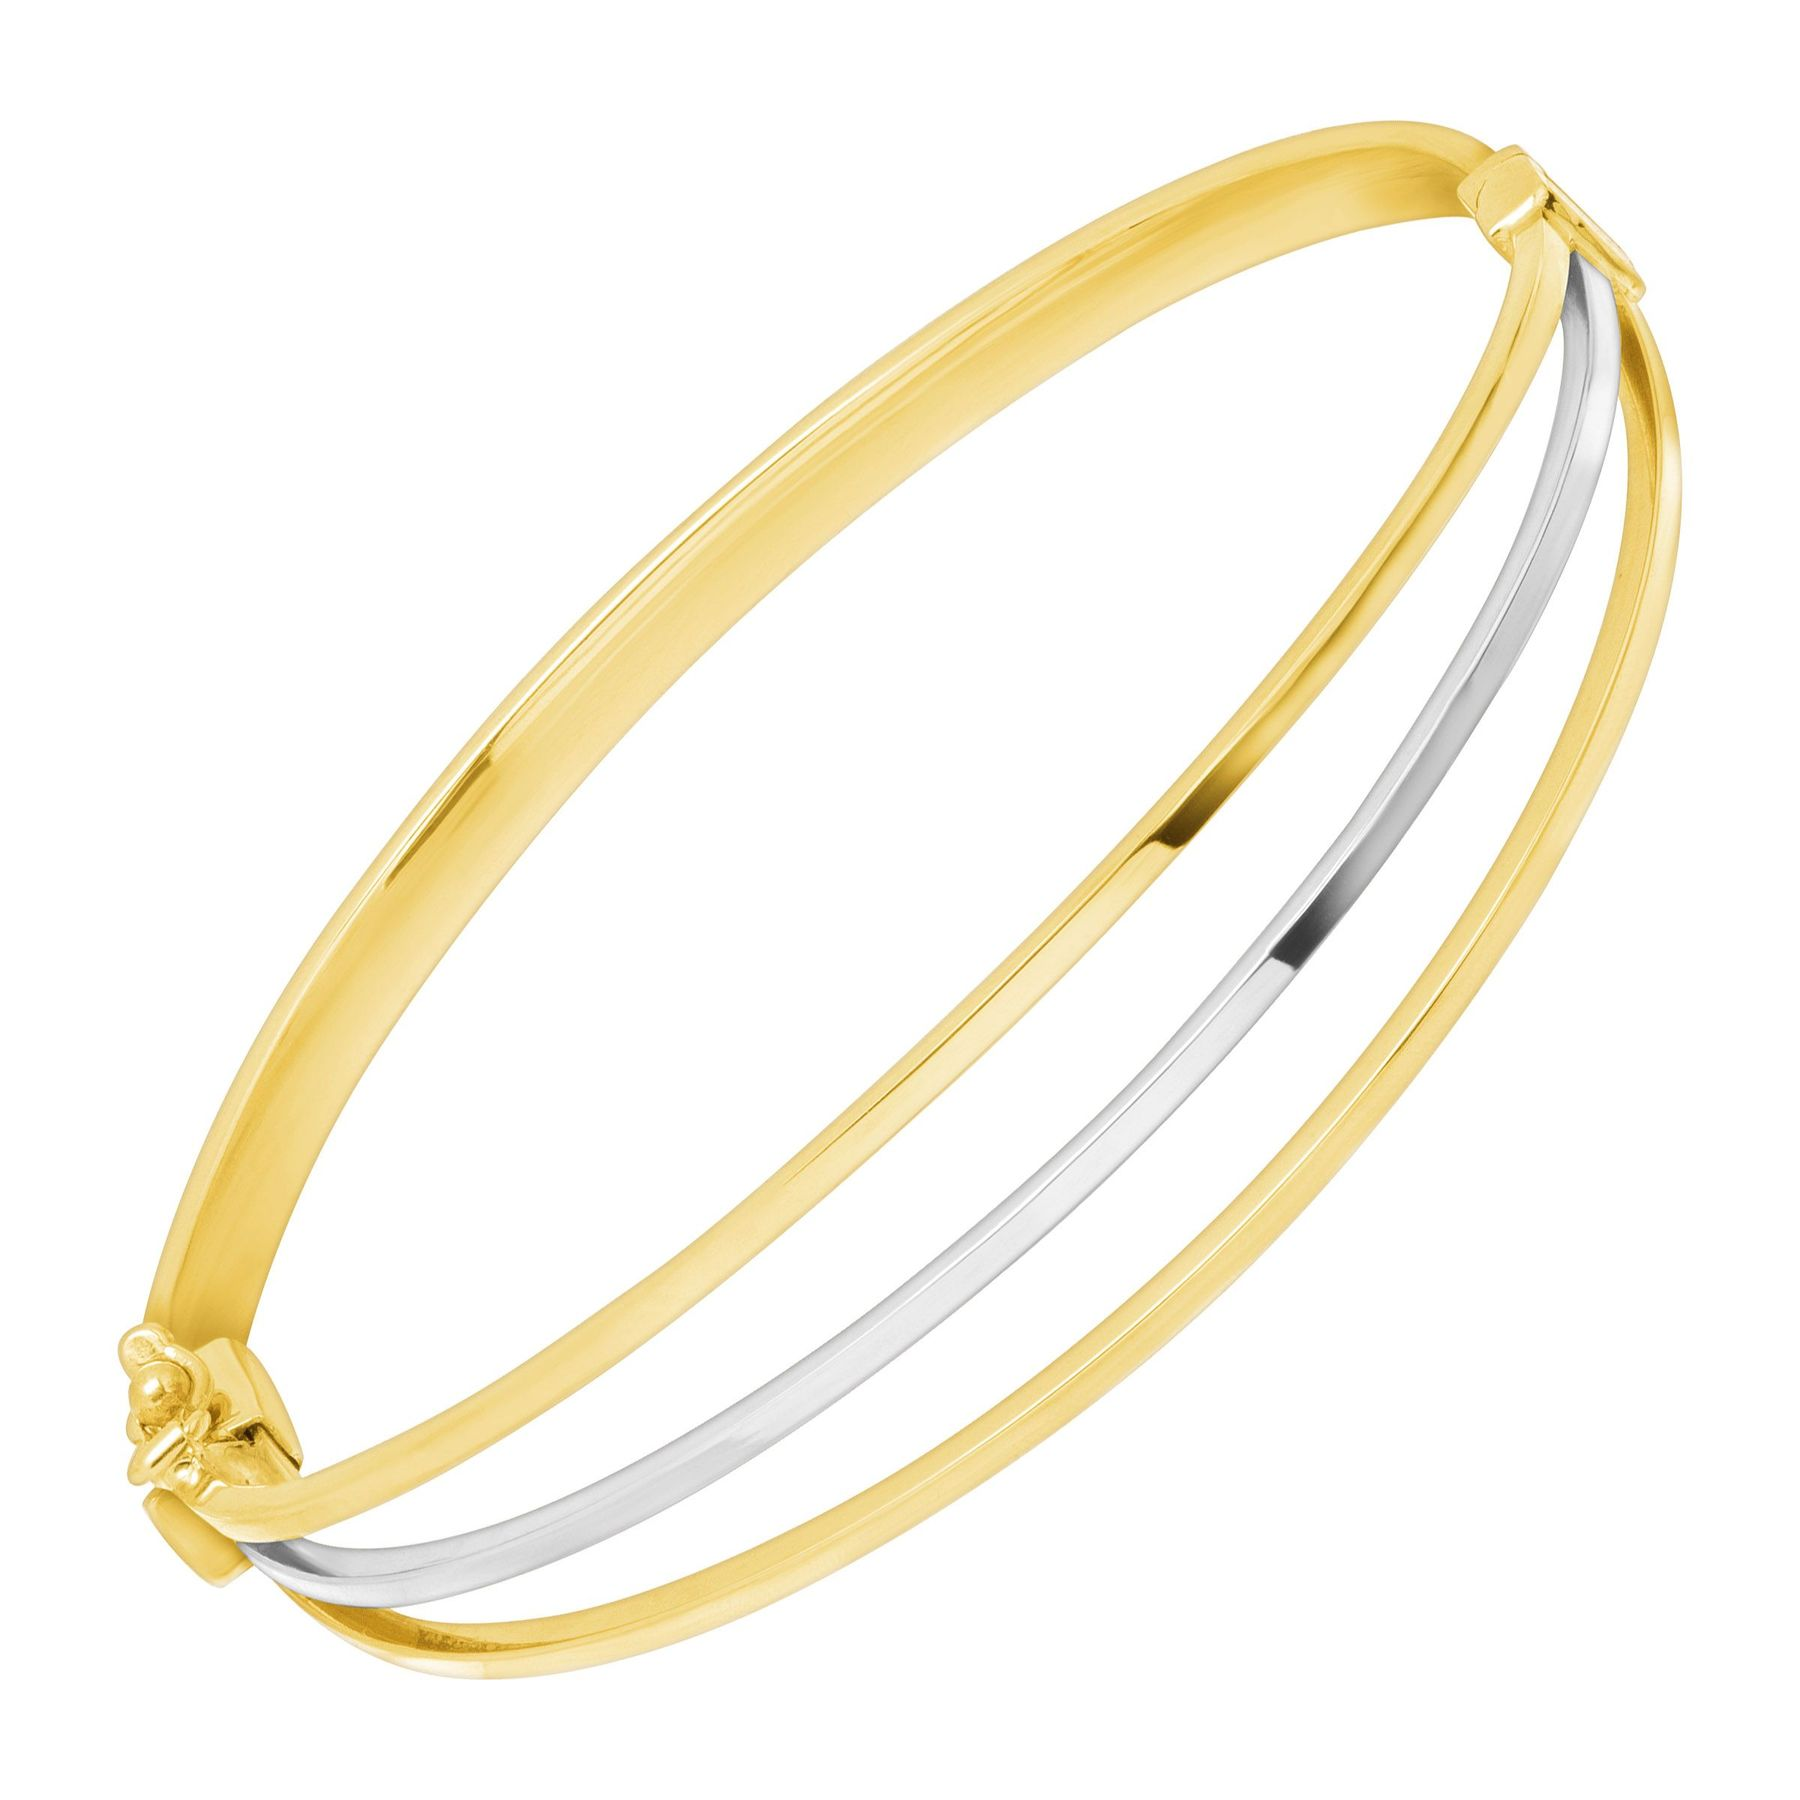 hollow bangles yg plain itm women men bangle shape gold oval yellow bracelet popular